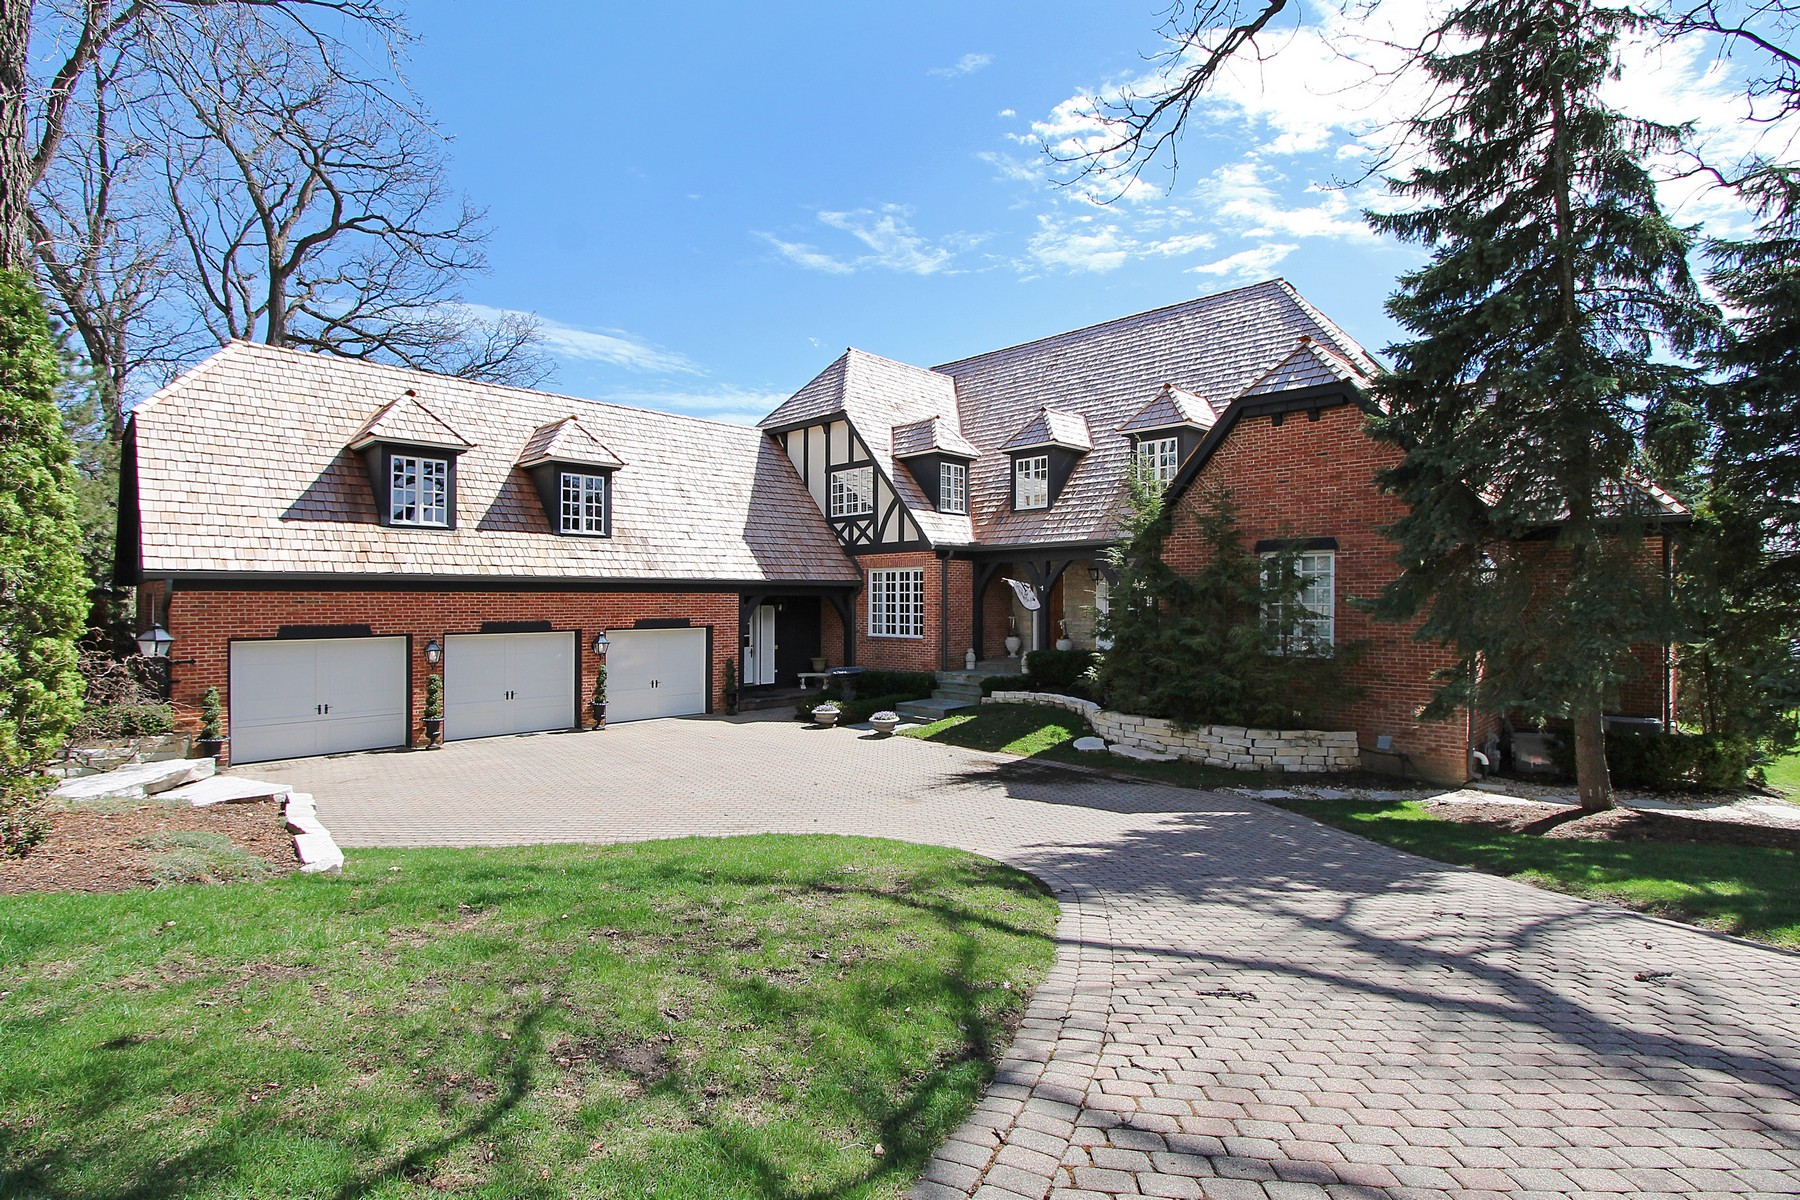 Maison unifamiliale pour l Vente à Country French Home 29 Riderwood Road North Barrington, Illinois, 60010 États-Unis